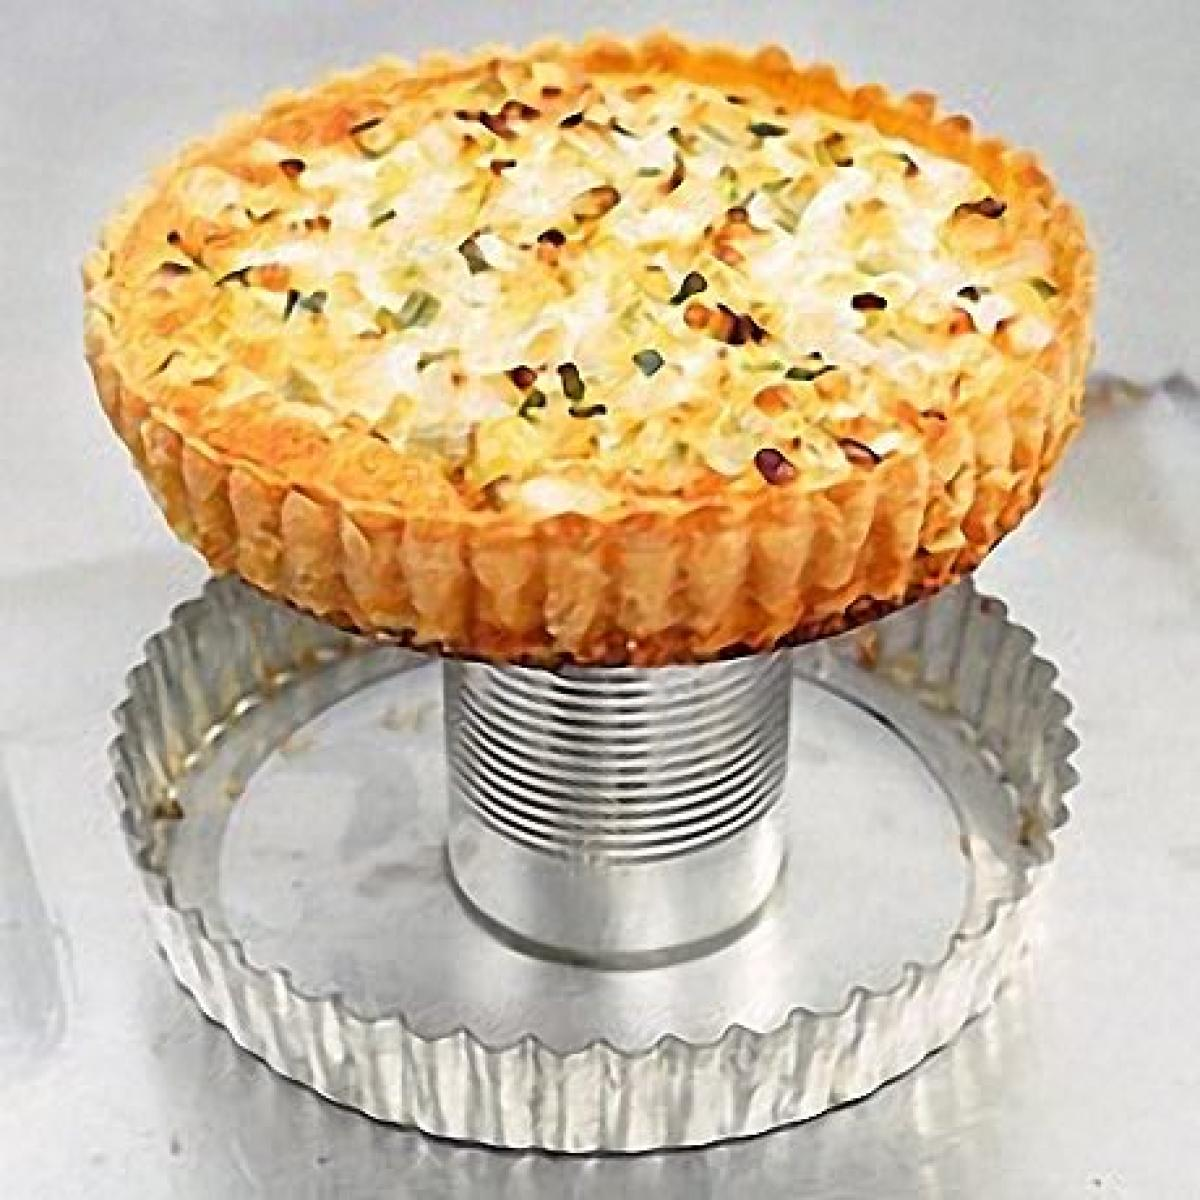 A picture of Delia's Cheese and Vegetable Wholewheat Flan recipe